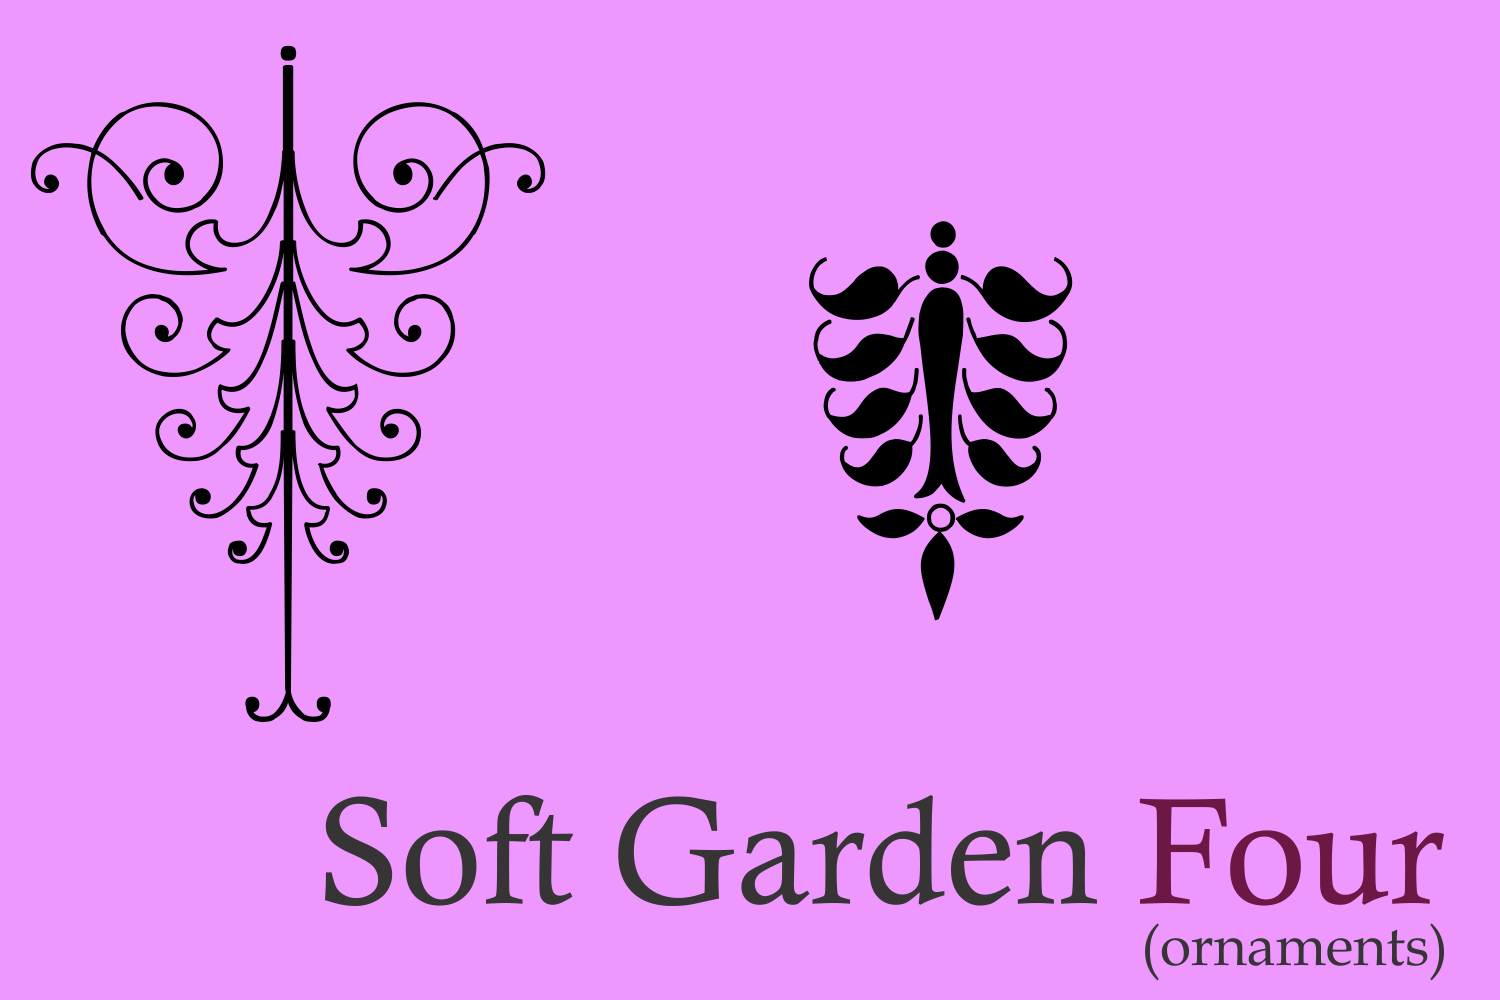 Soft Garden Four example image 3